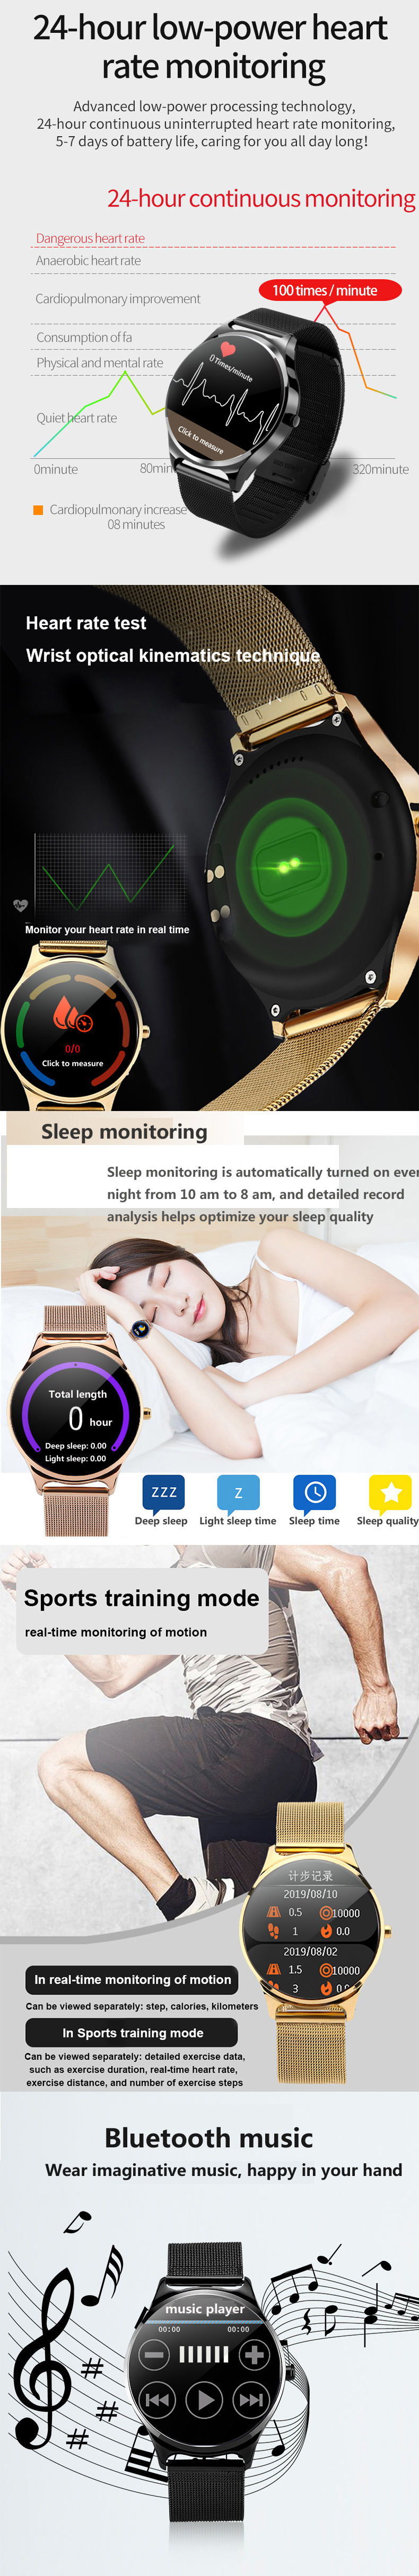 Bakeey W18 1.33 Inch Larger Full Touch Screen RAM 1G Heart Rate Monitor Music Control Weather Smart Watch